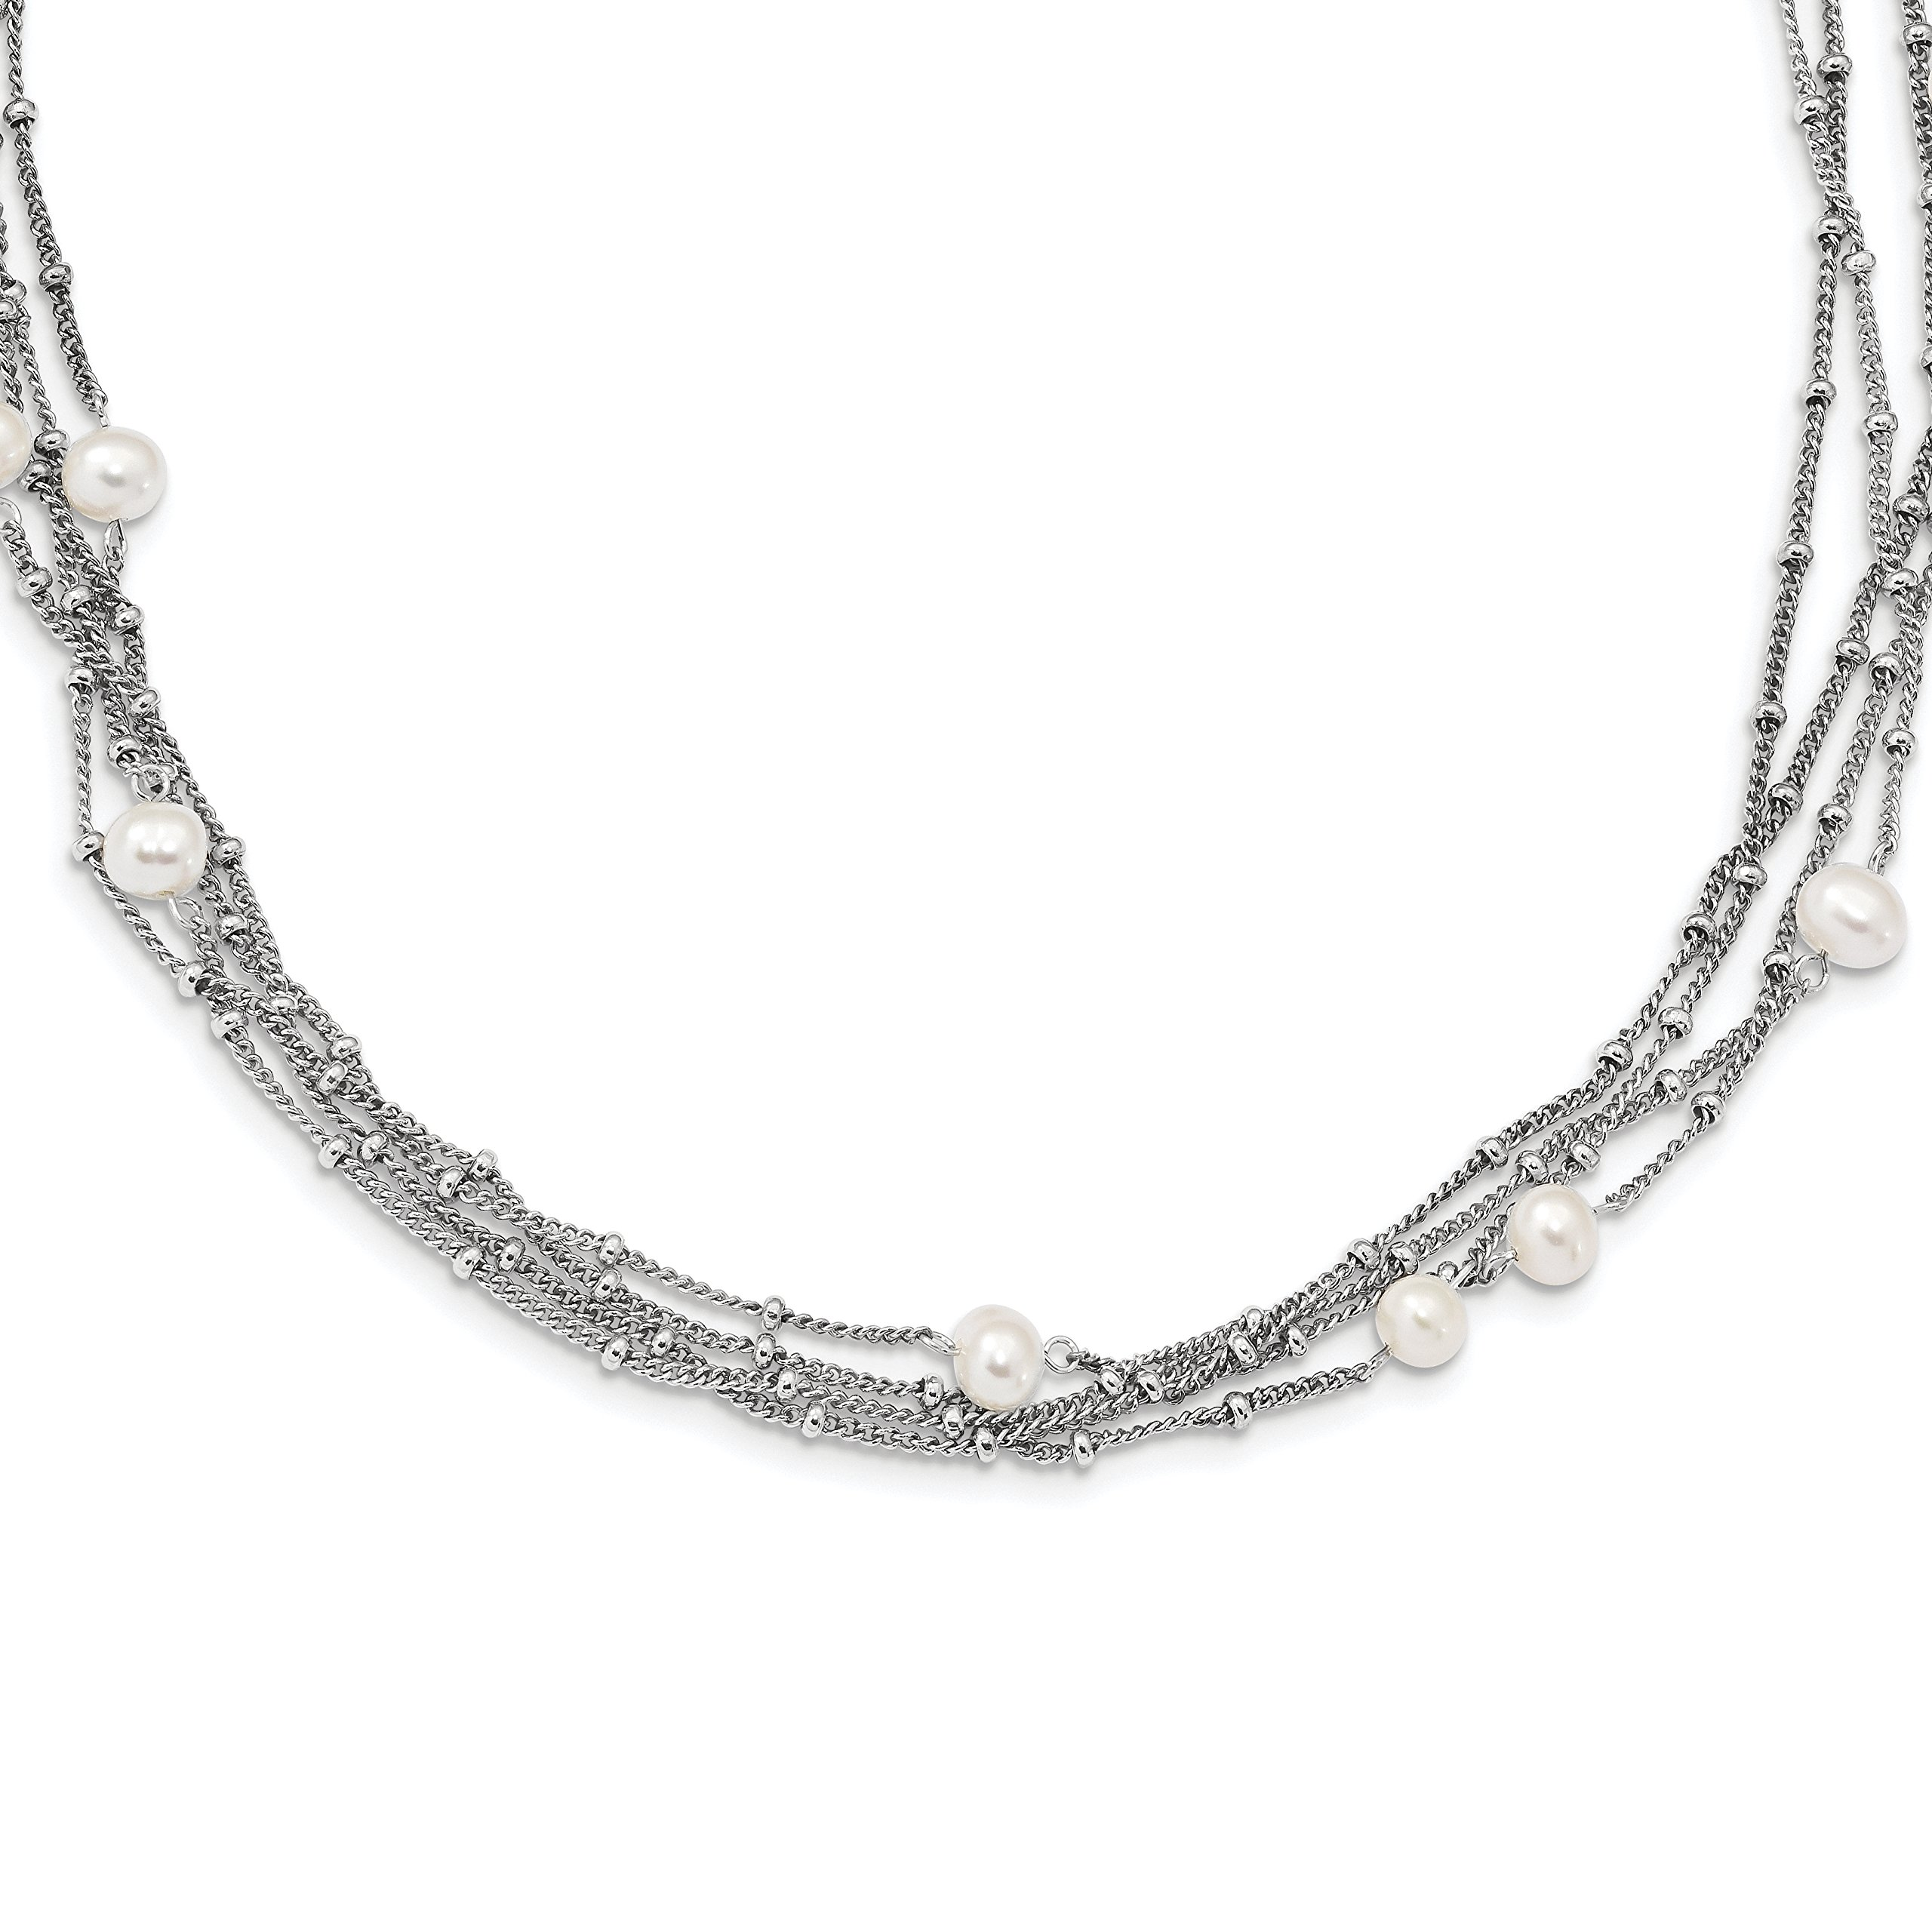 ICE CARATS 925 Sterling Silver Rh 6mm Wt Freshwater Cultured Pearl Bead Multi Strand Chain Necklace Station